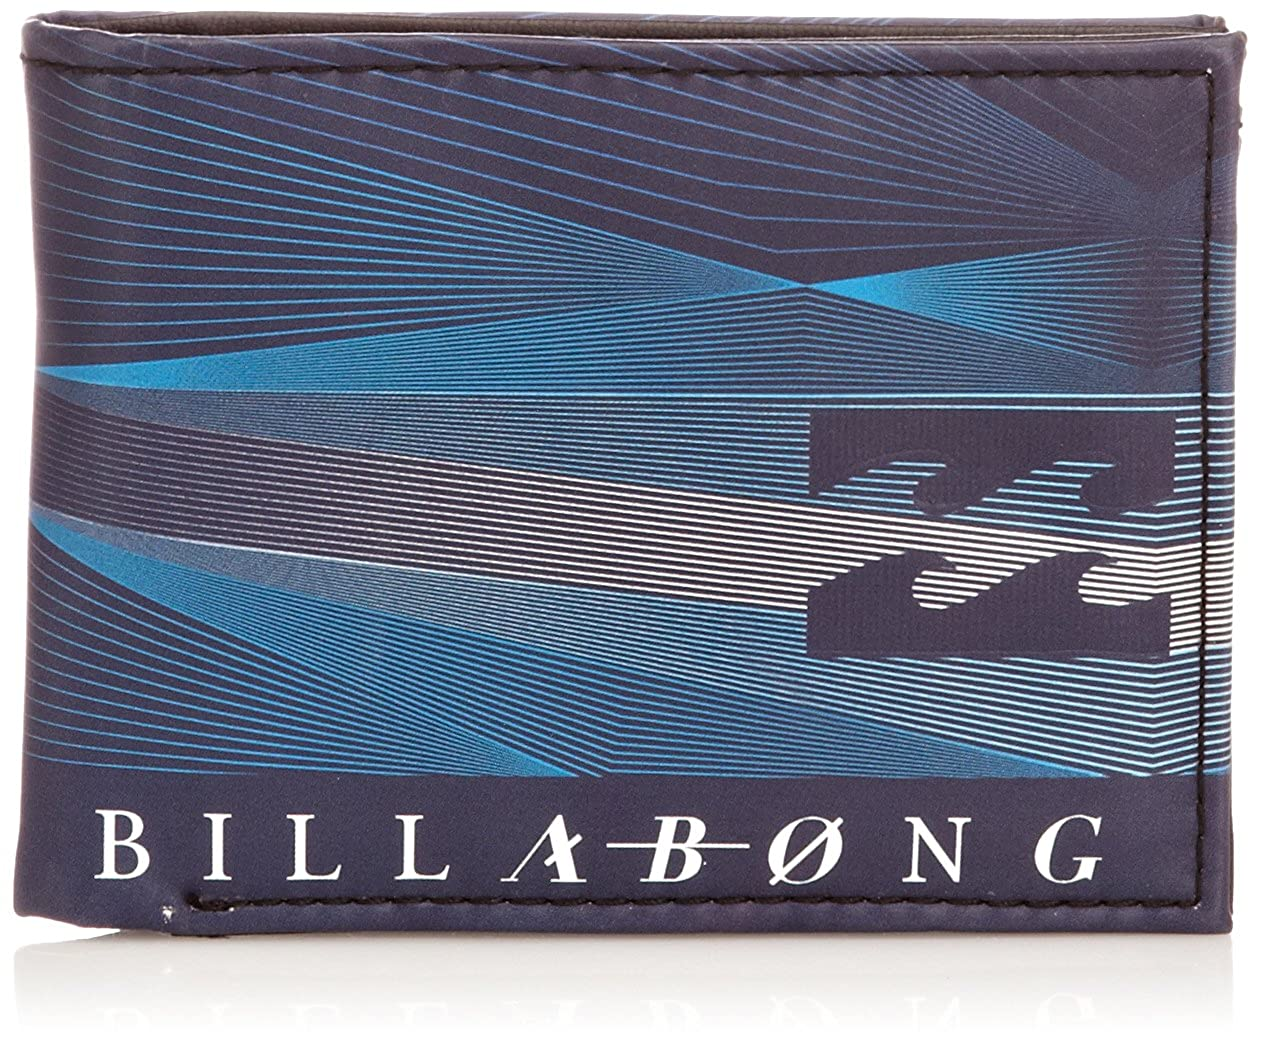 Billabong Conquered Wallet - Monedero Hombre